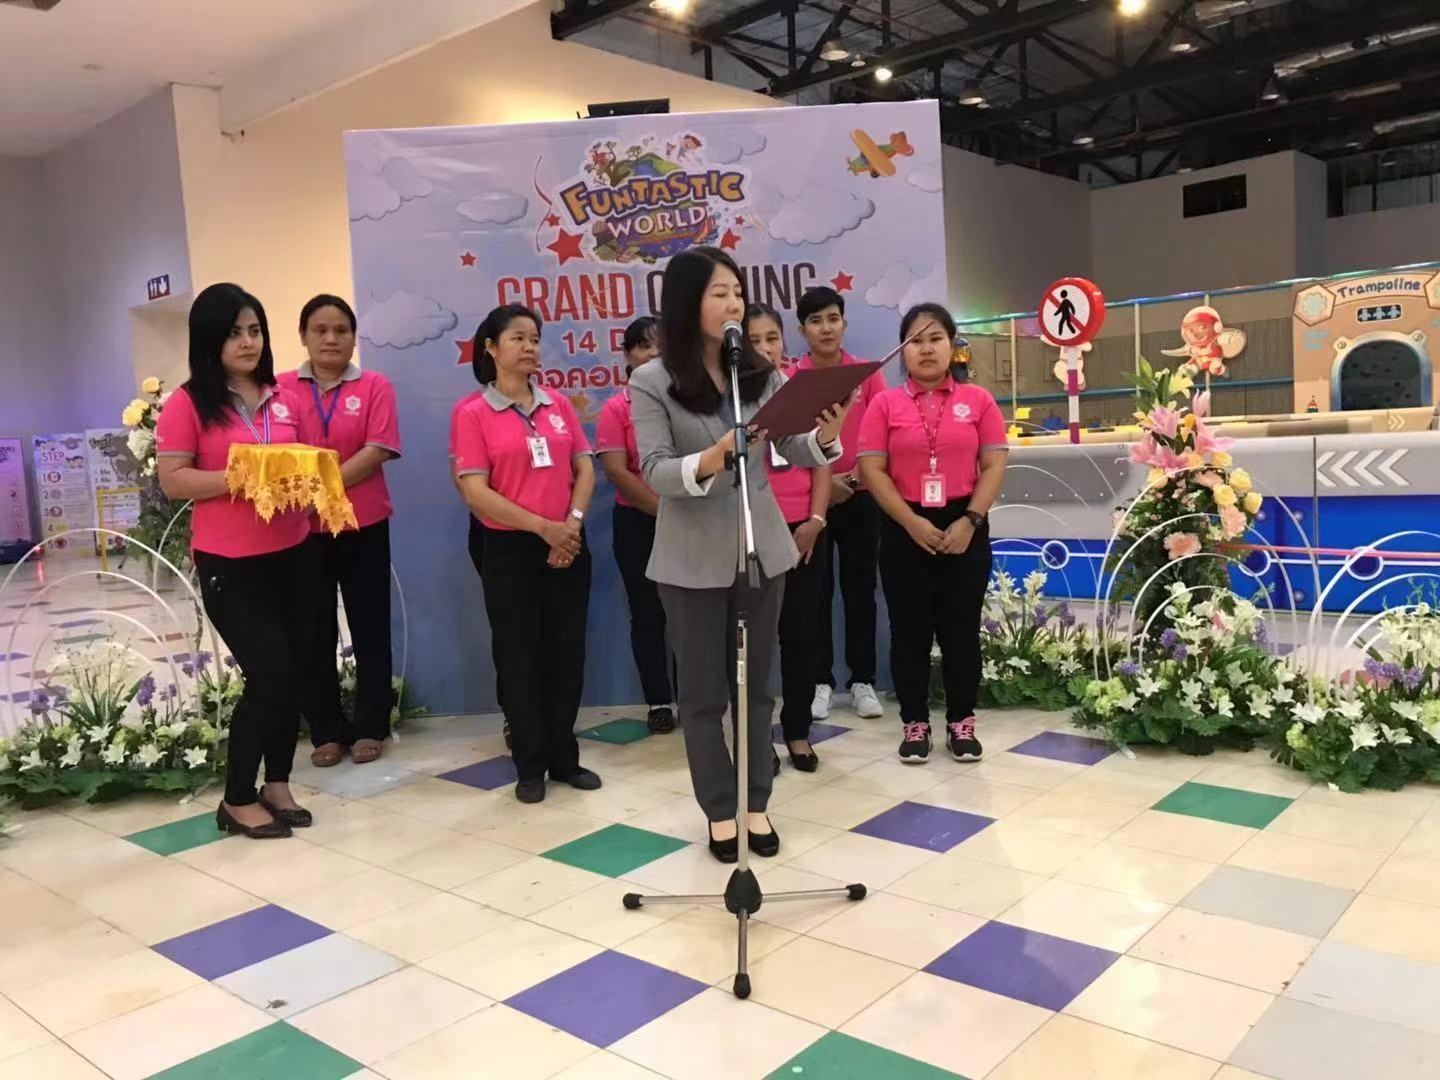 Grand opening of Saraburi indoor playground